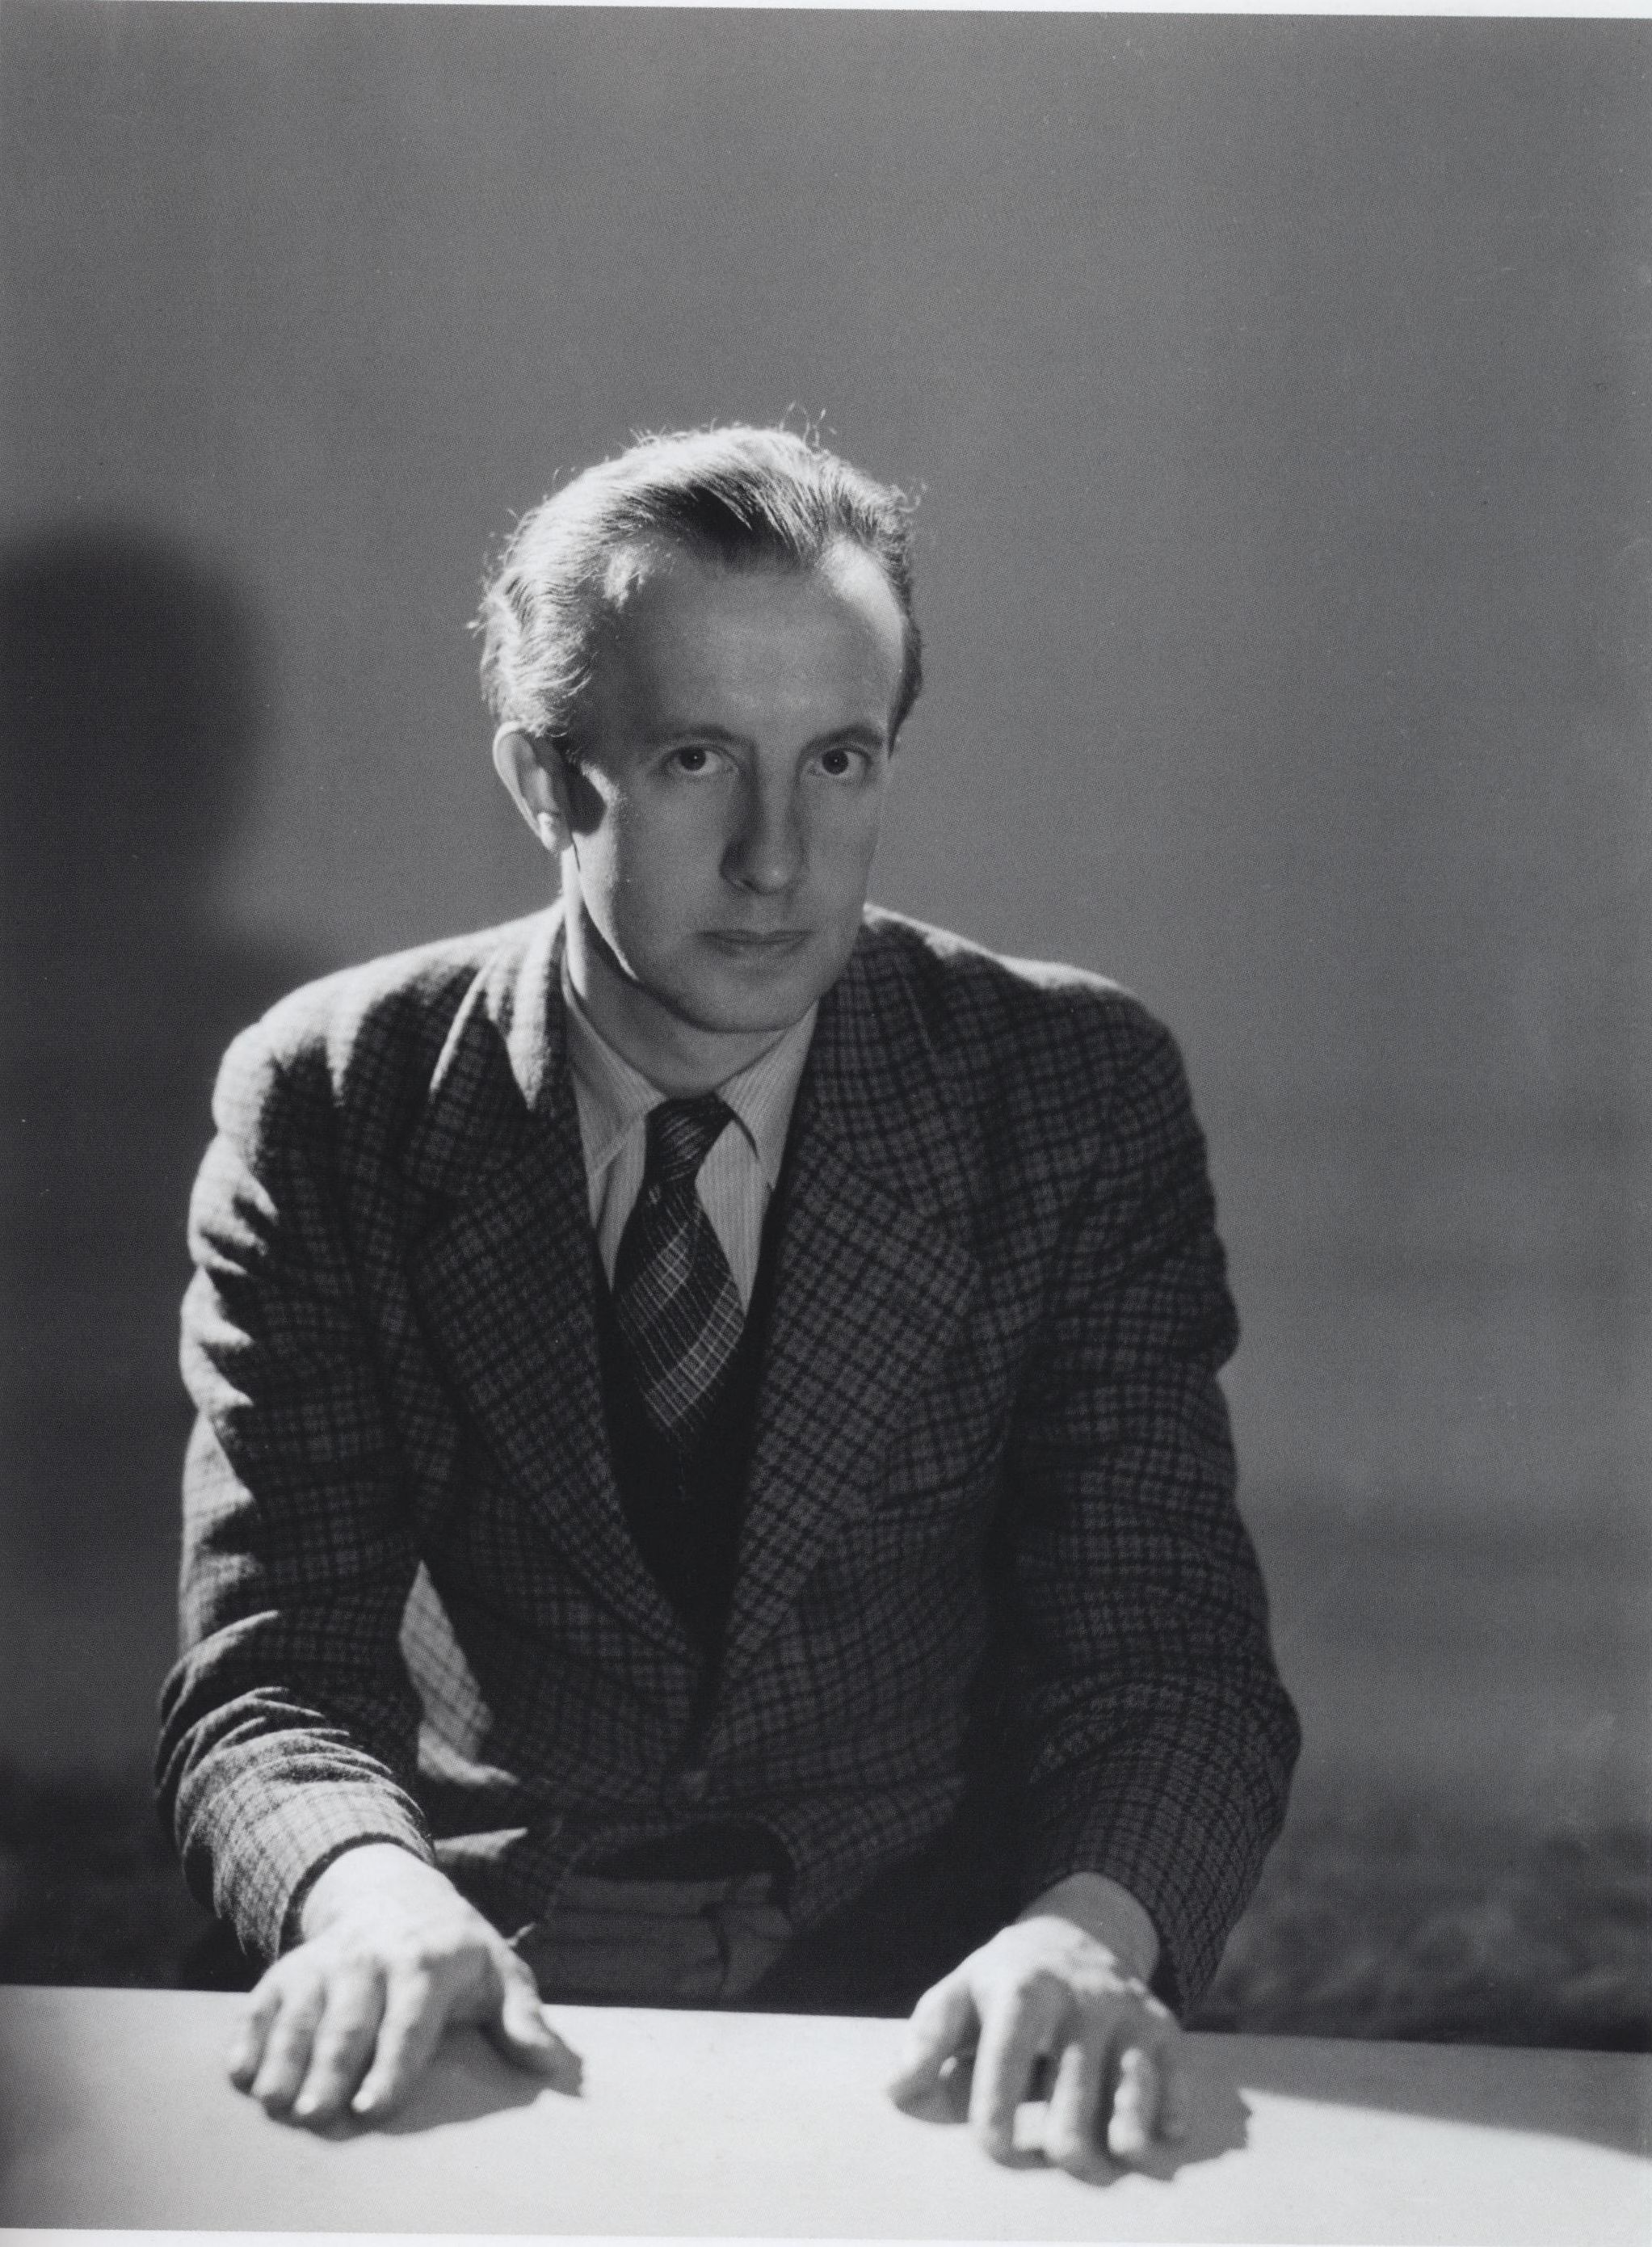 Paul Eluard looking into the camera.